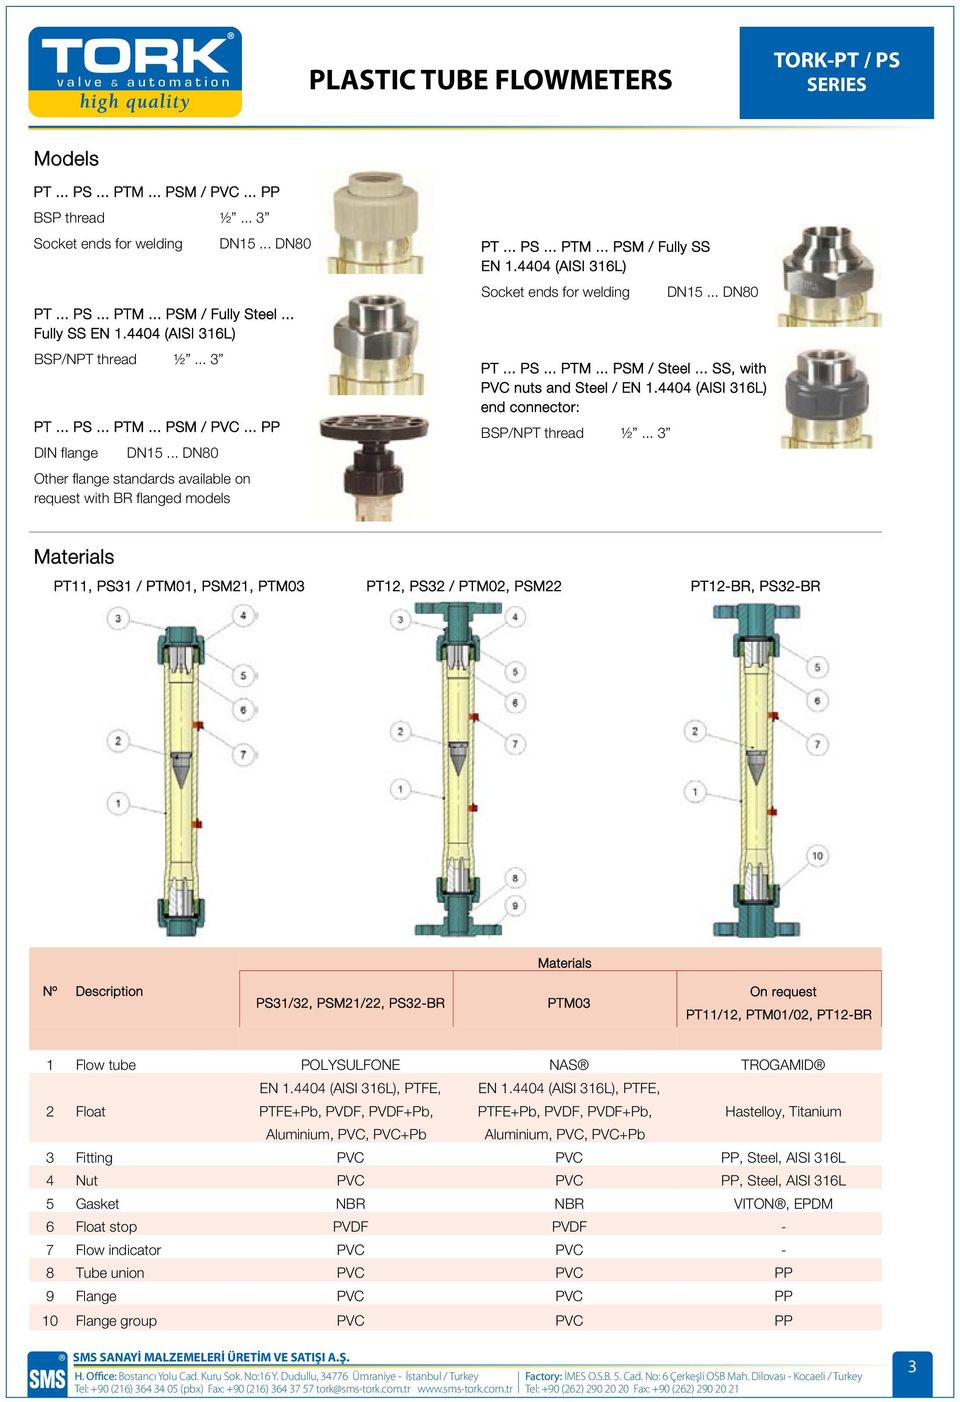 4404 (AISI 316L) Socket ends for welding PT... PS... PTM... PSM / Steel... SS, with PVC nuts and Steel / EN 1.4404 (AISI 316L) end connector: BSP/NPT thread ½... 3 DN15.